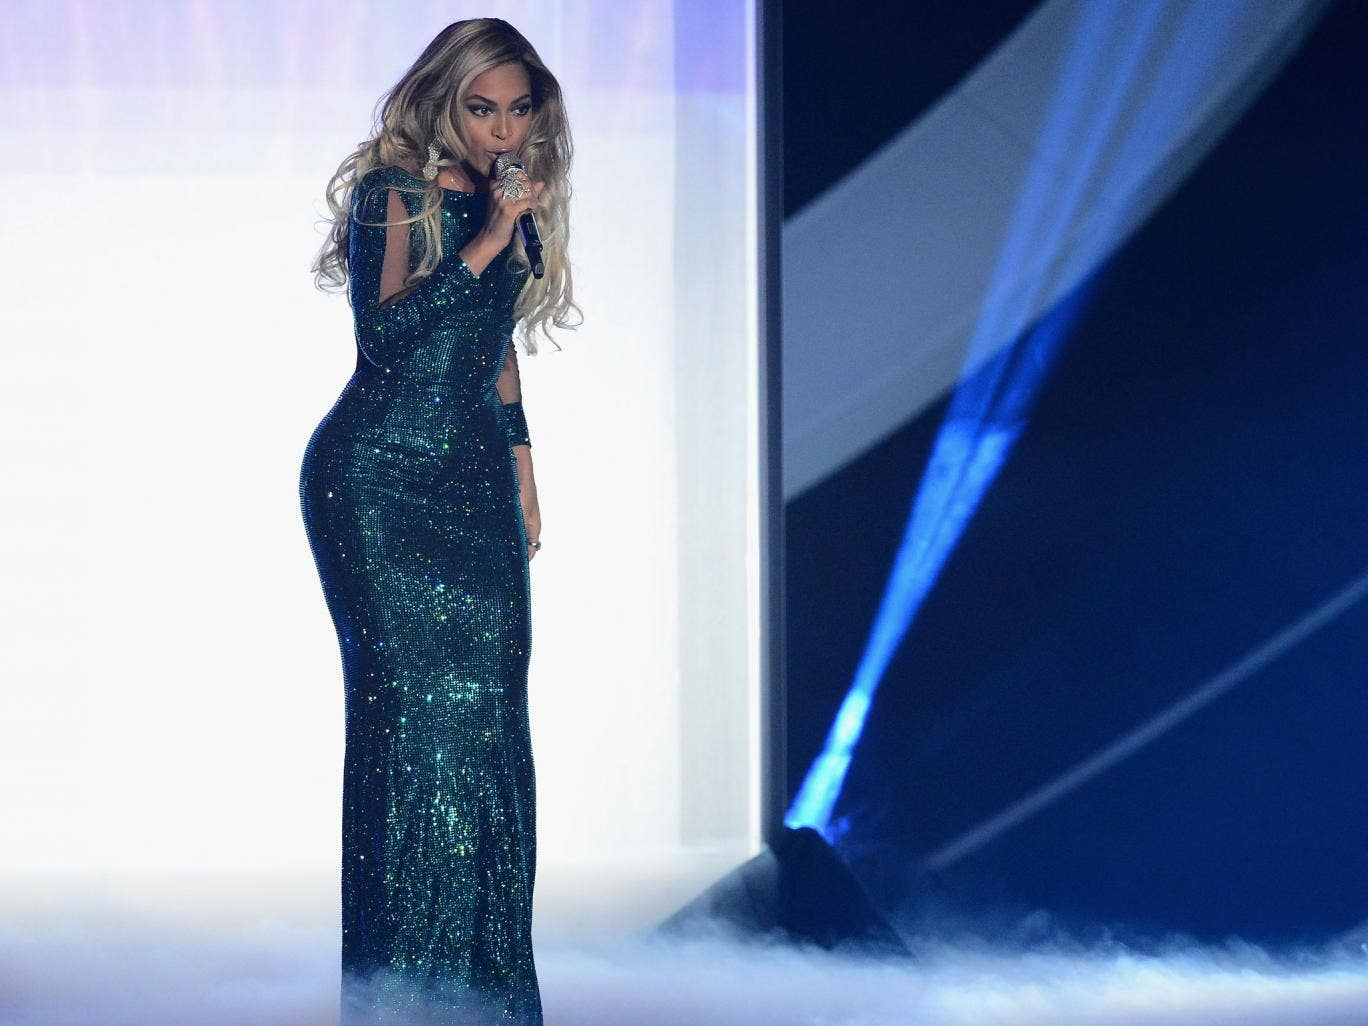 Beyonce was the most-tweeted about performer at the Brit Awards 2014, which broke the record for the most-tweeted about UK TV show